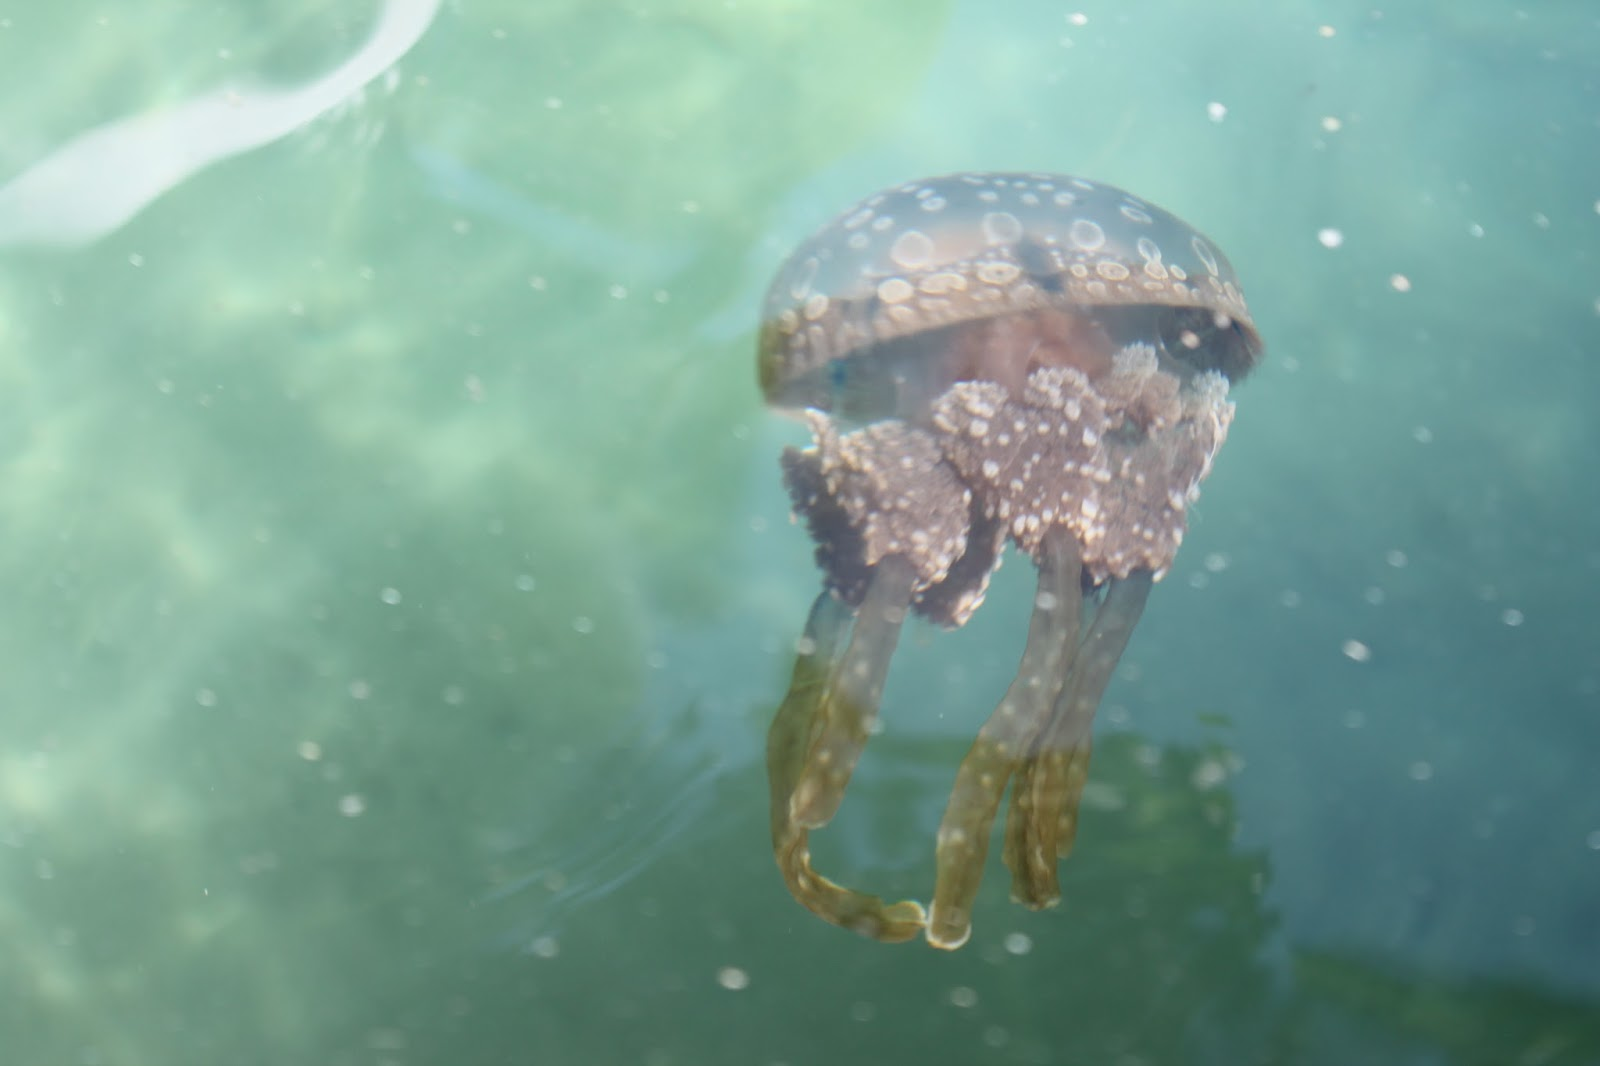 Sohoton Cove and Non-sting Jellyfish at Bucas Grande Island